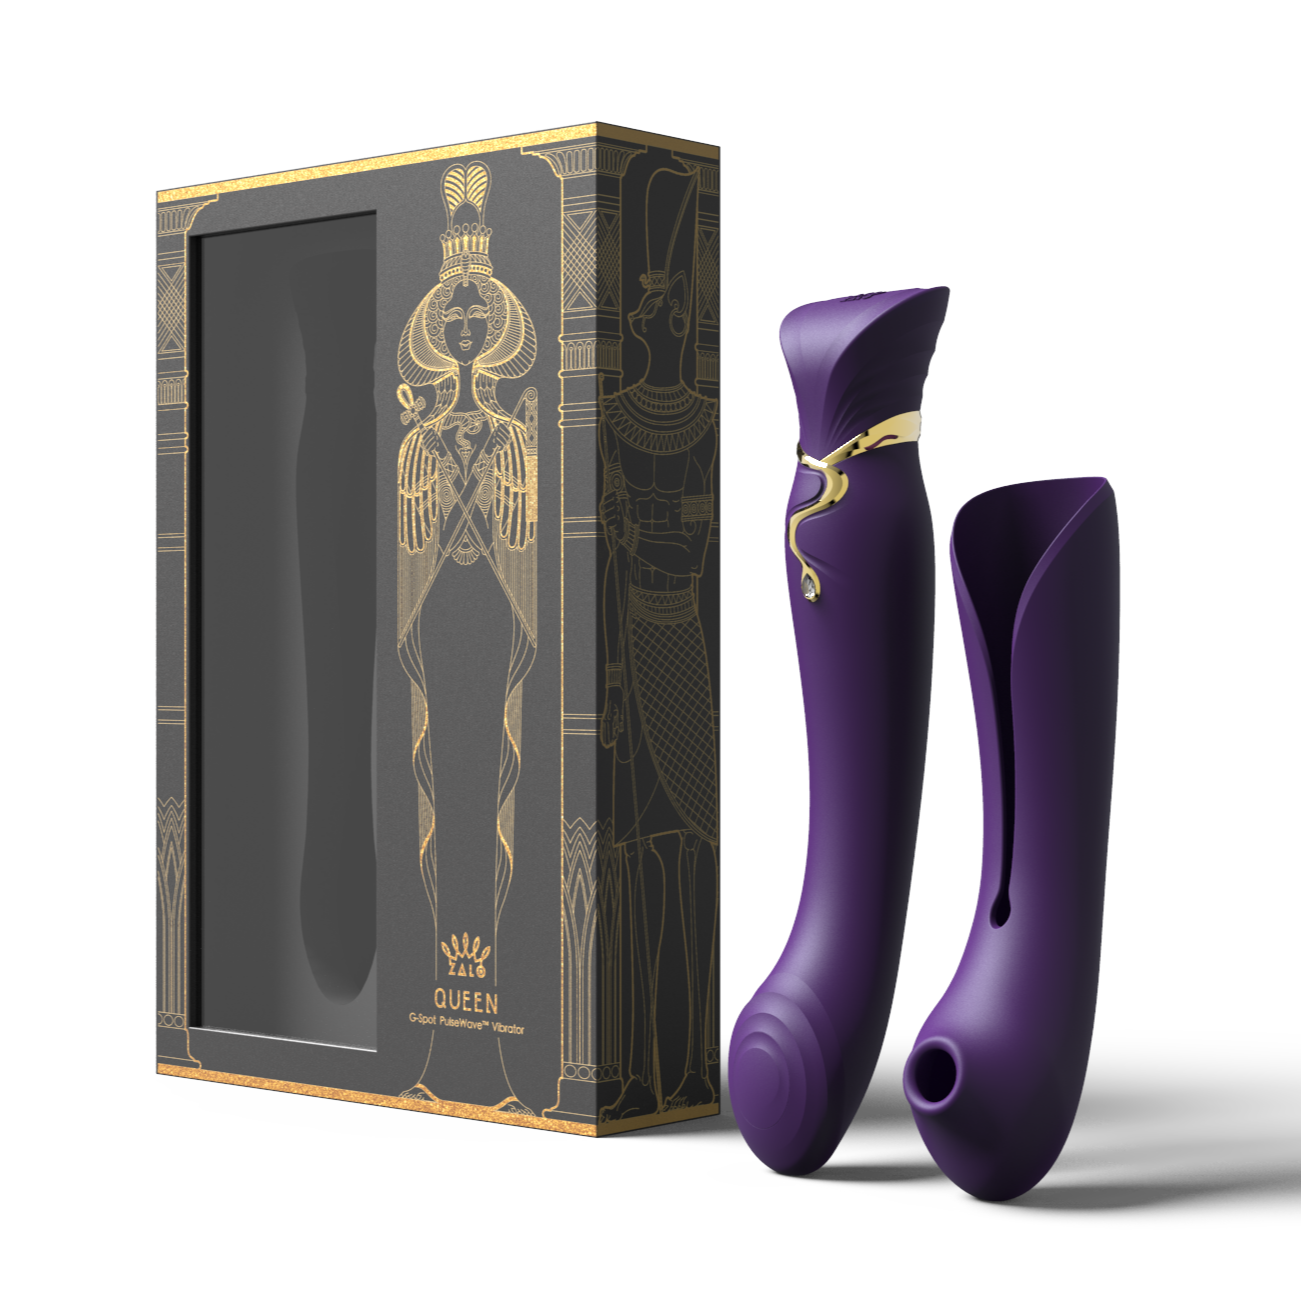 Queen Set G-spot PulseWave Vibrator with Suction Sleeve